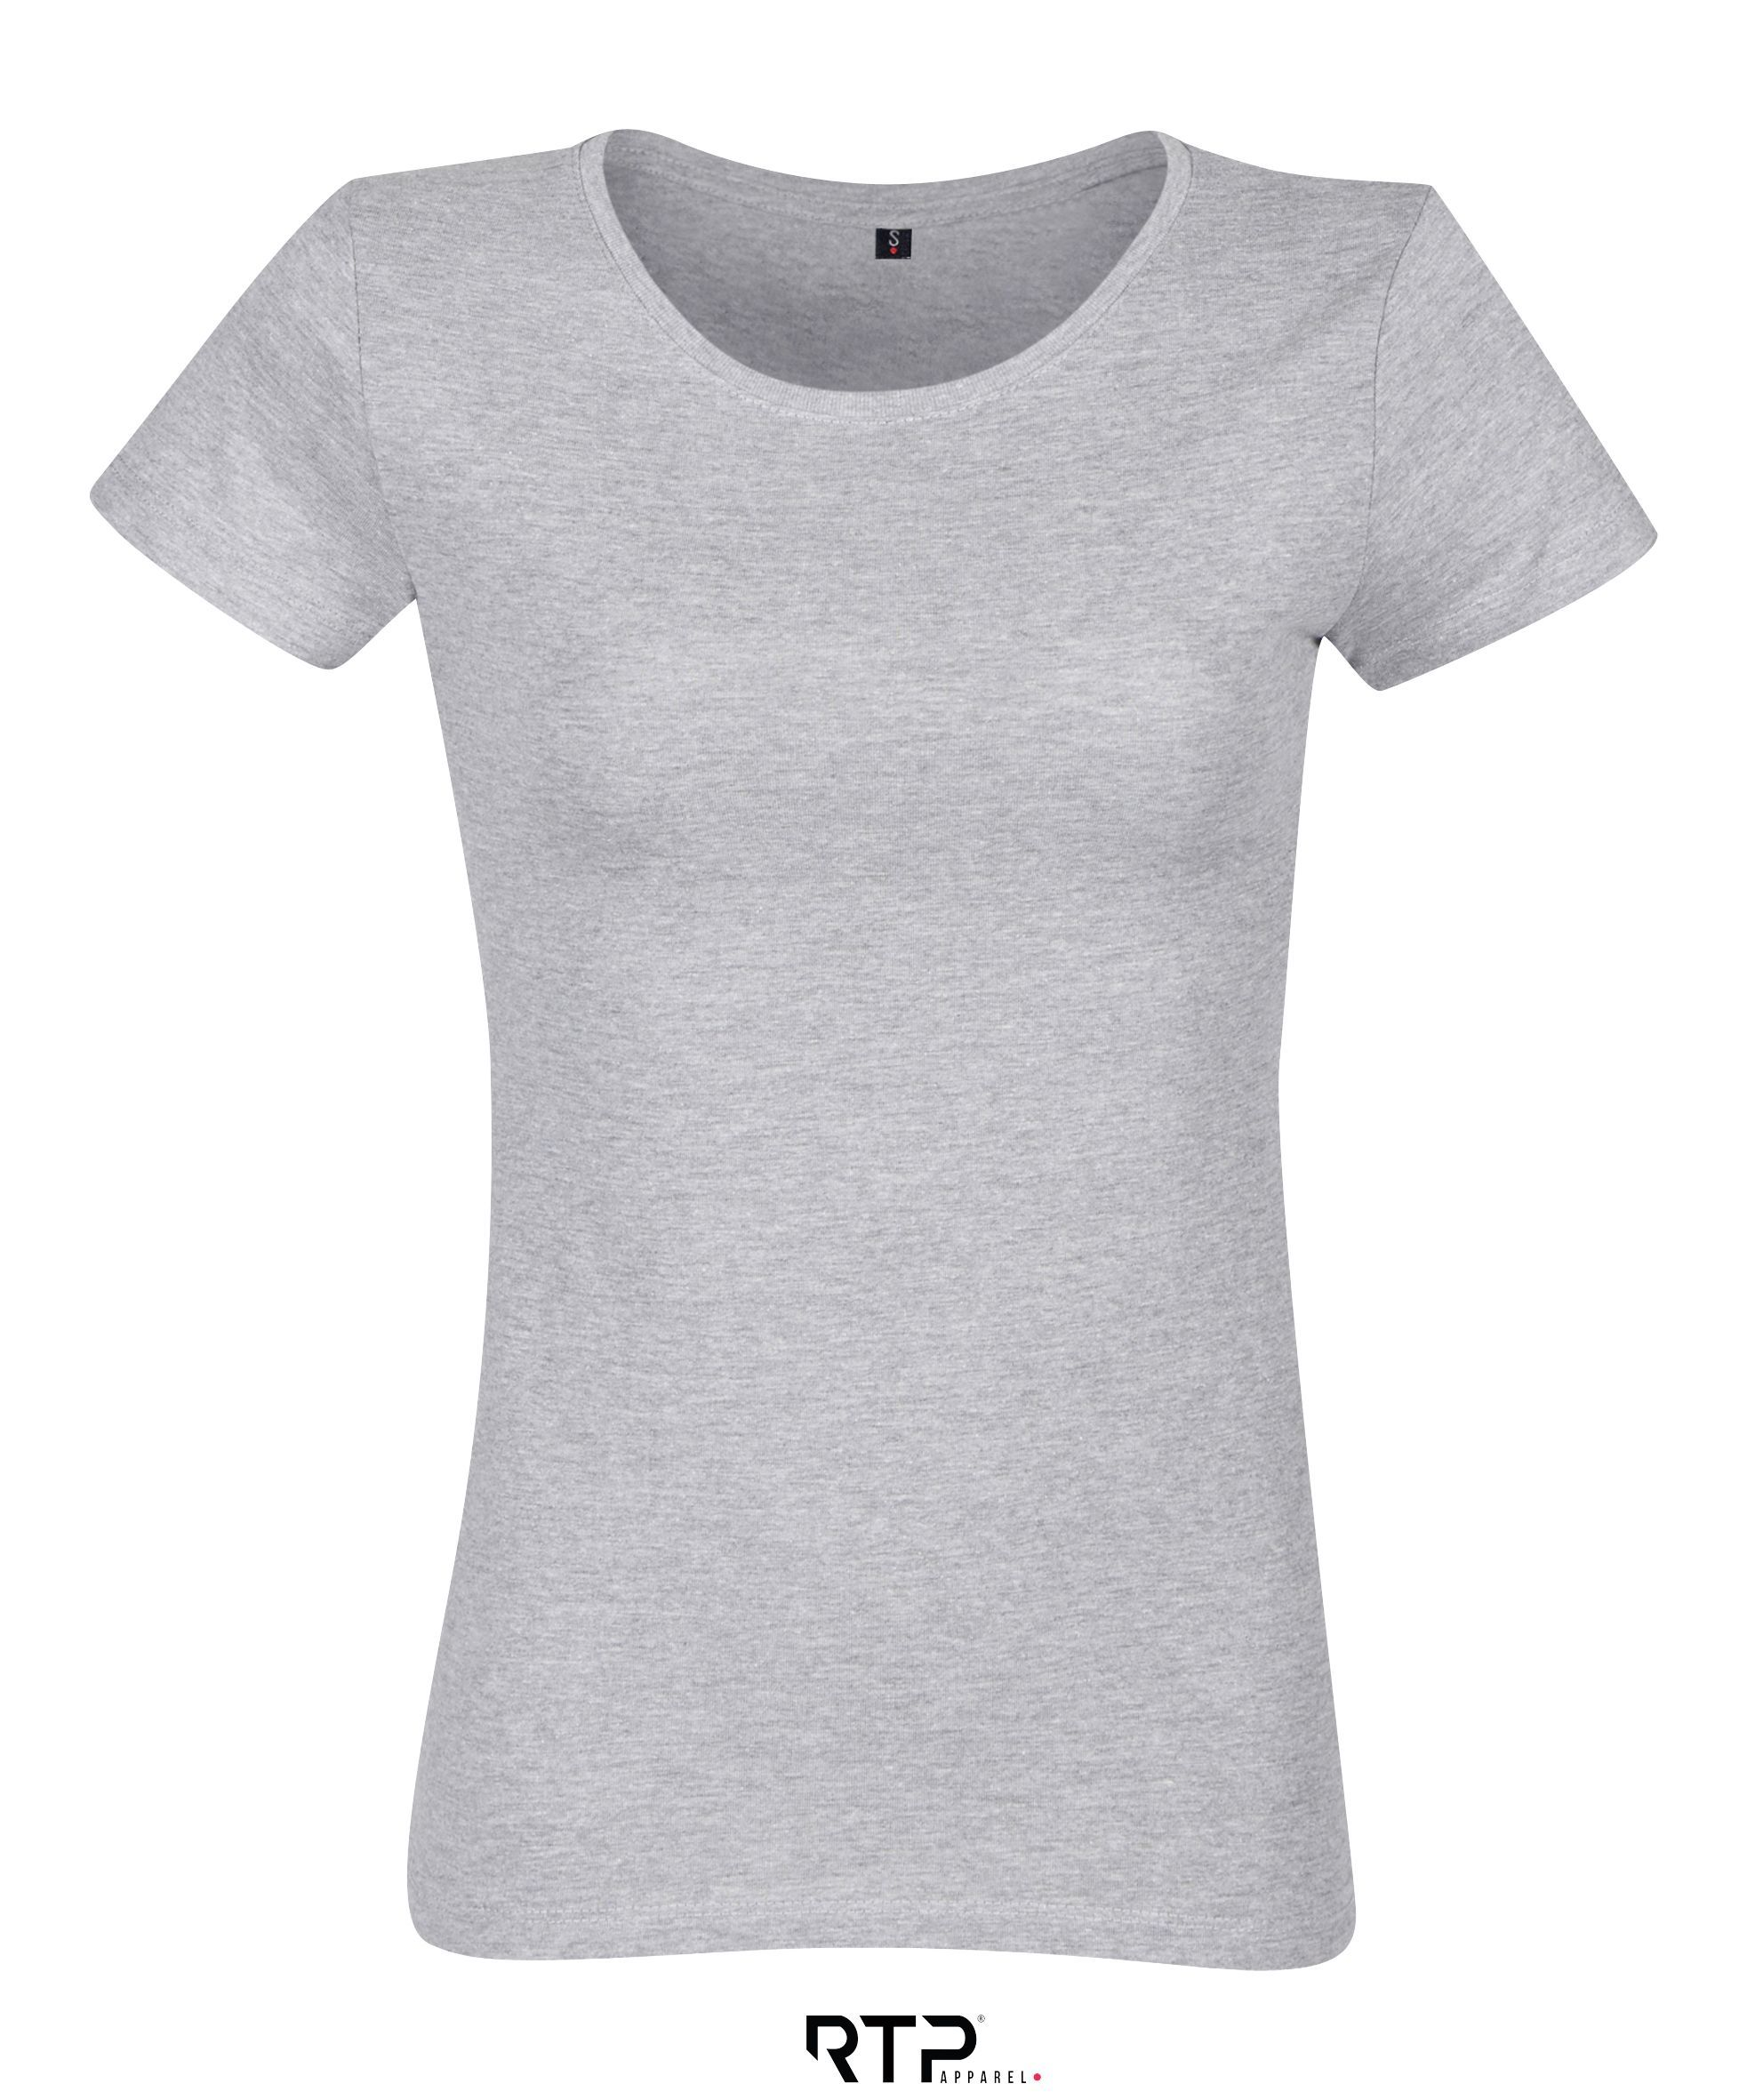 Tee-shirt femme coupe cousu manches courtes Cosmic 155